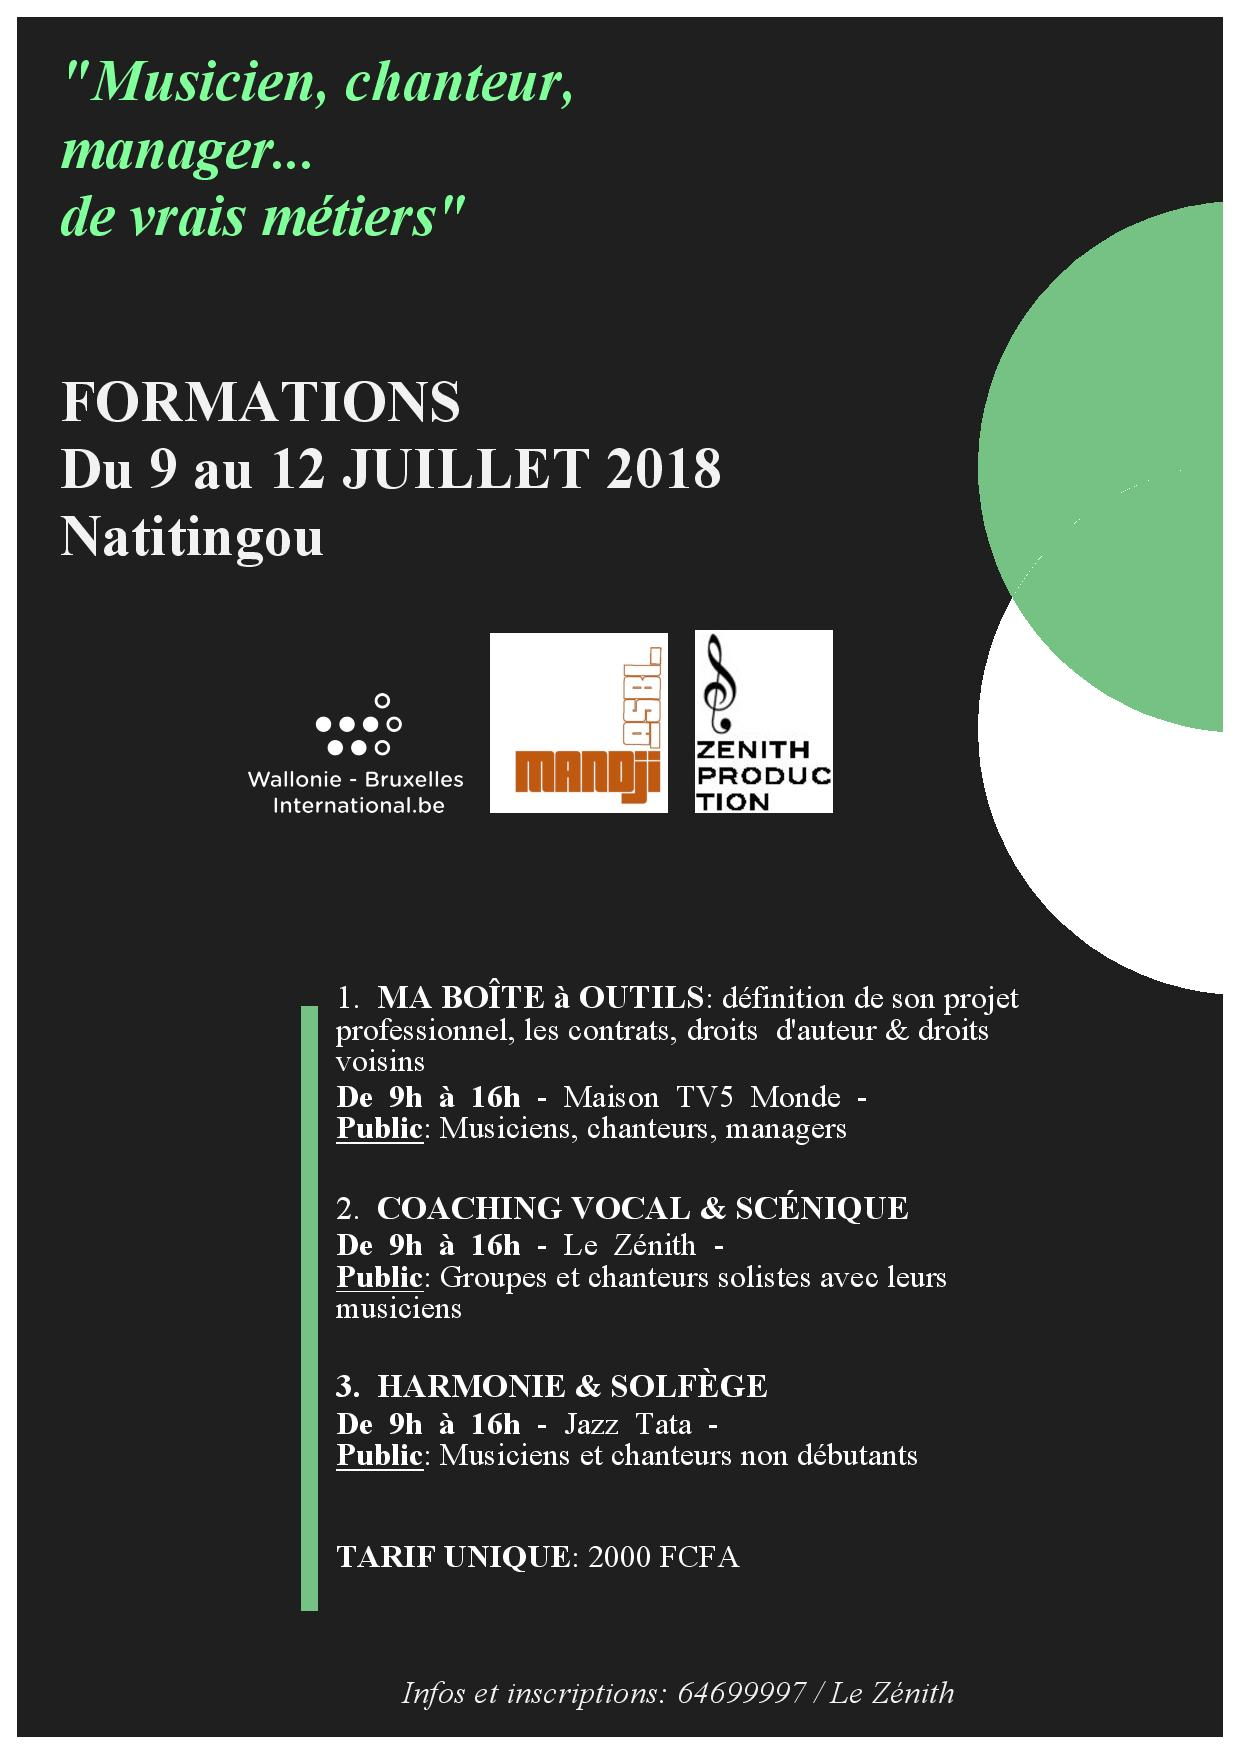 Affiche formations Natitingou 2018-1-page-001